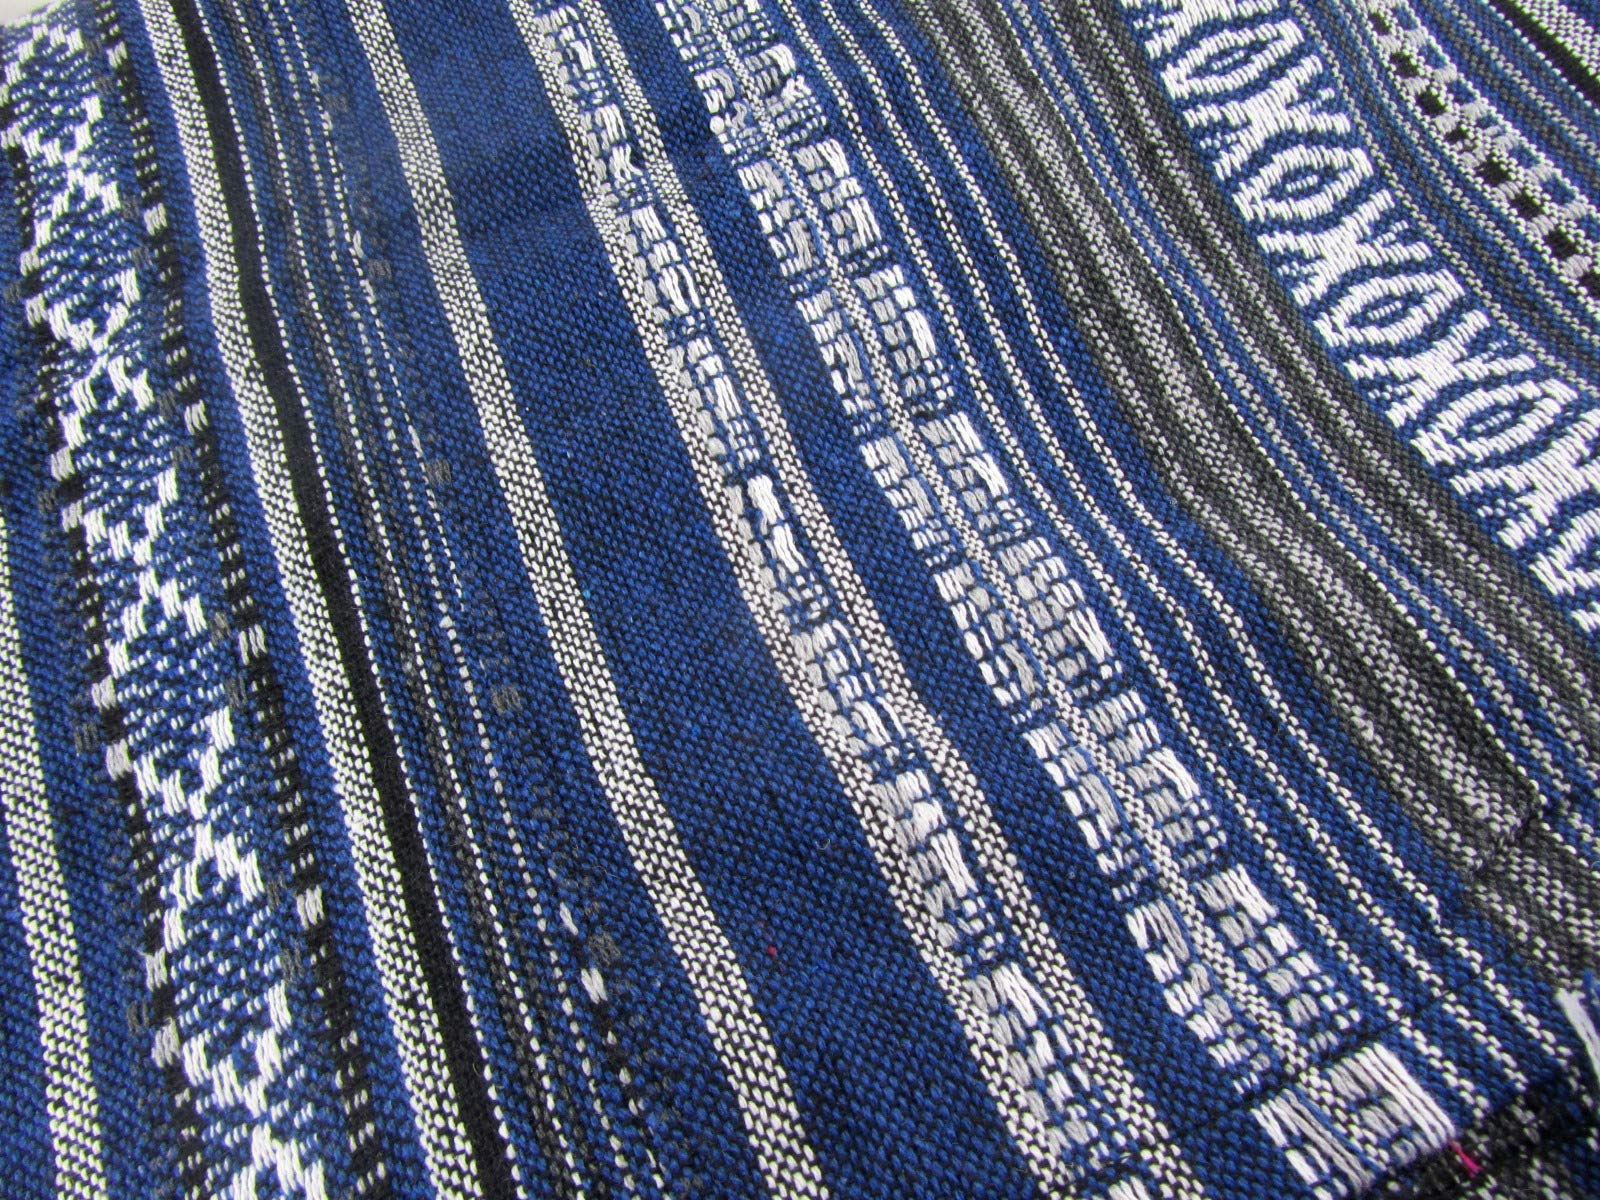 Large Handwoven Tribal Blanket Aztec Ikat Bedspread Queen Size 100% Cotton 90'' x 85'' by Blue Orchid (Image #4)